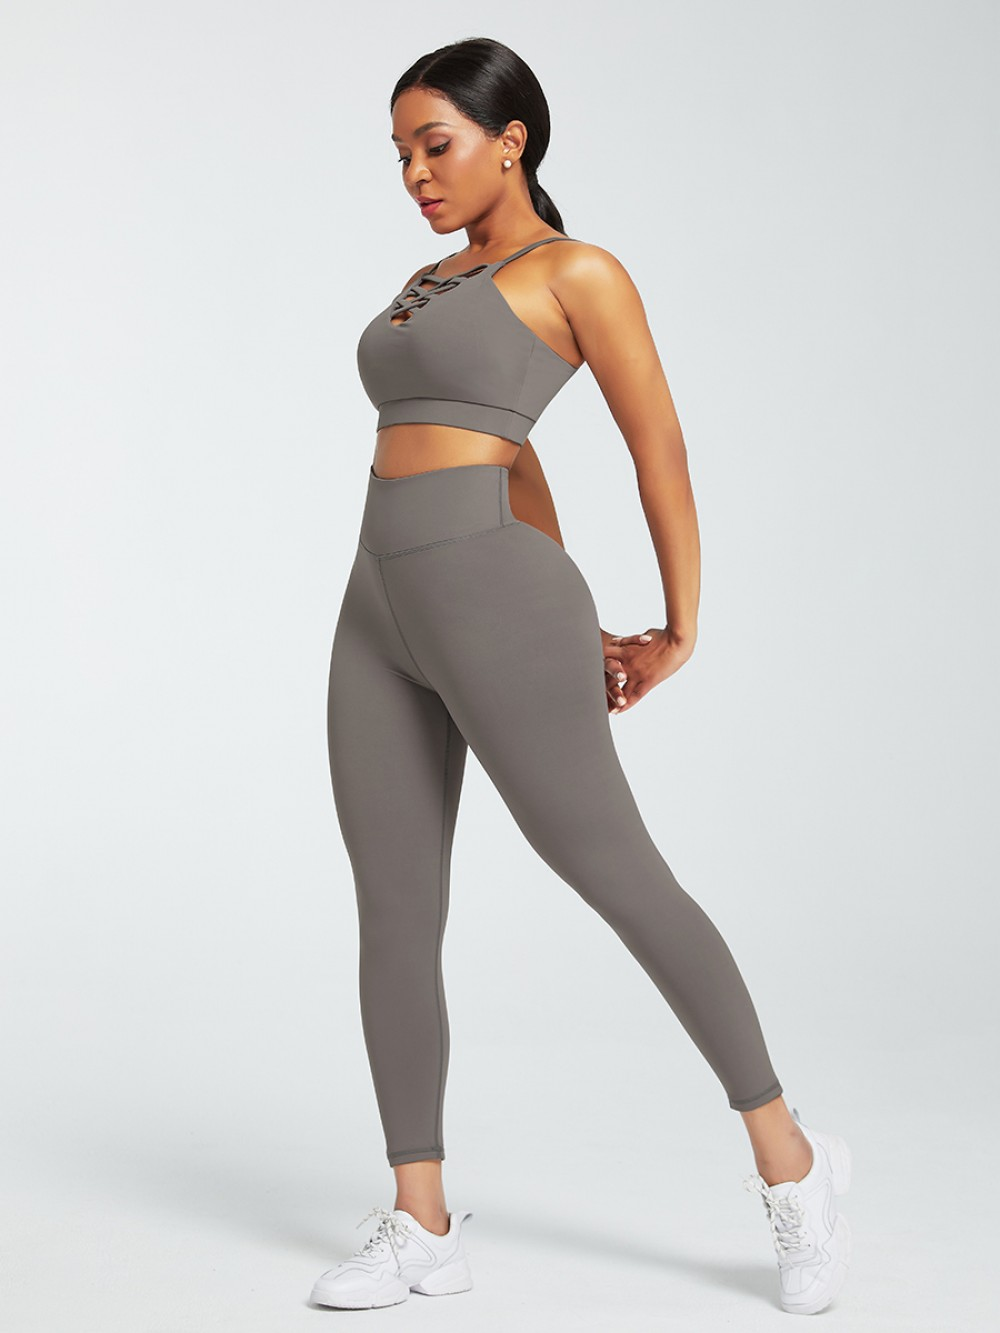 Gray Sports Sets Low Back Wide Waistband Pockets Fabulous Fit